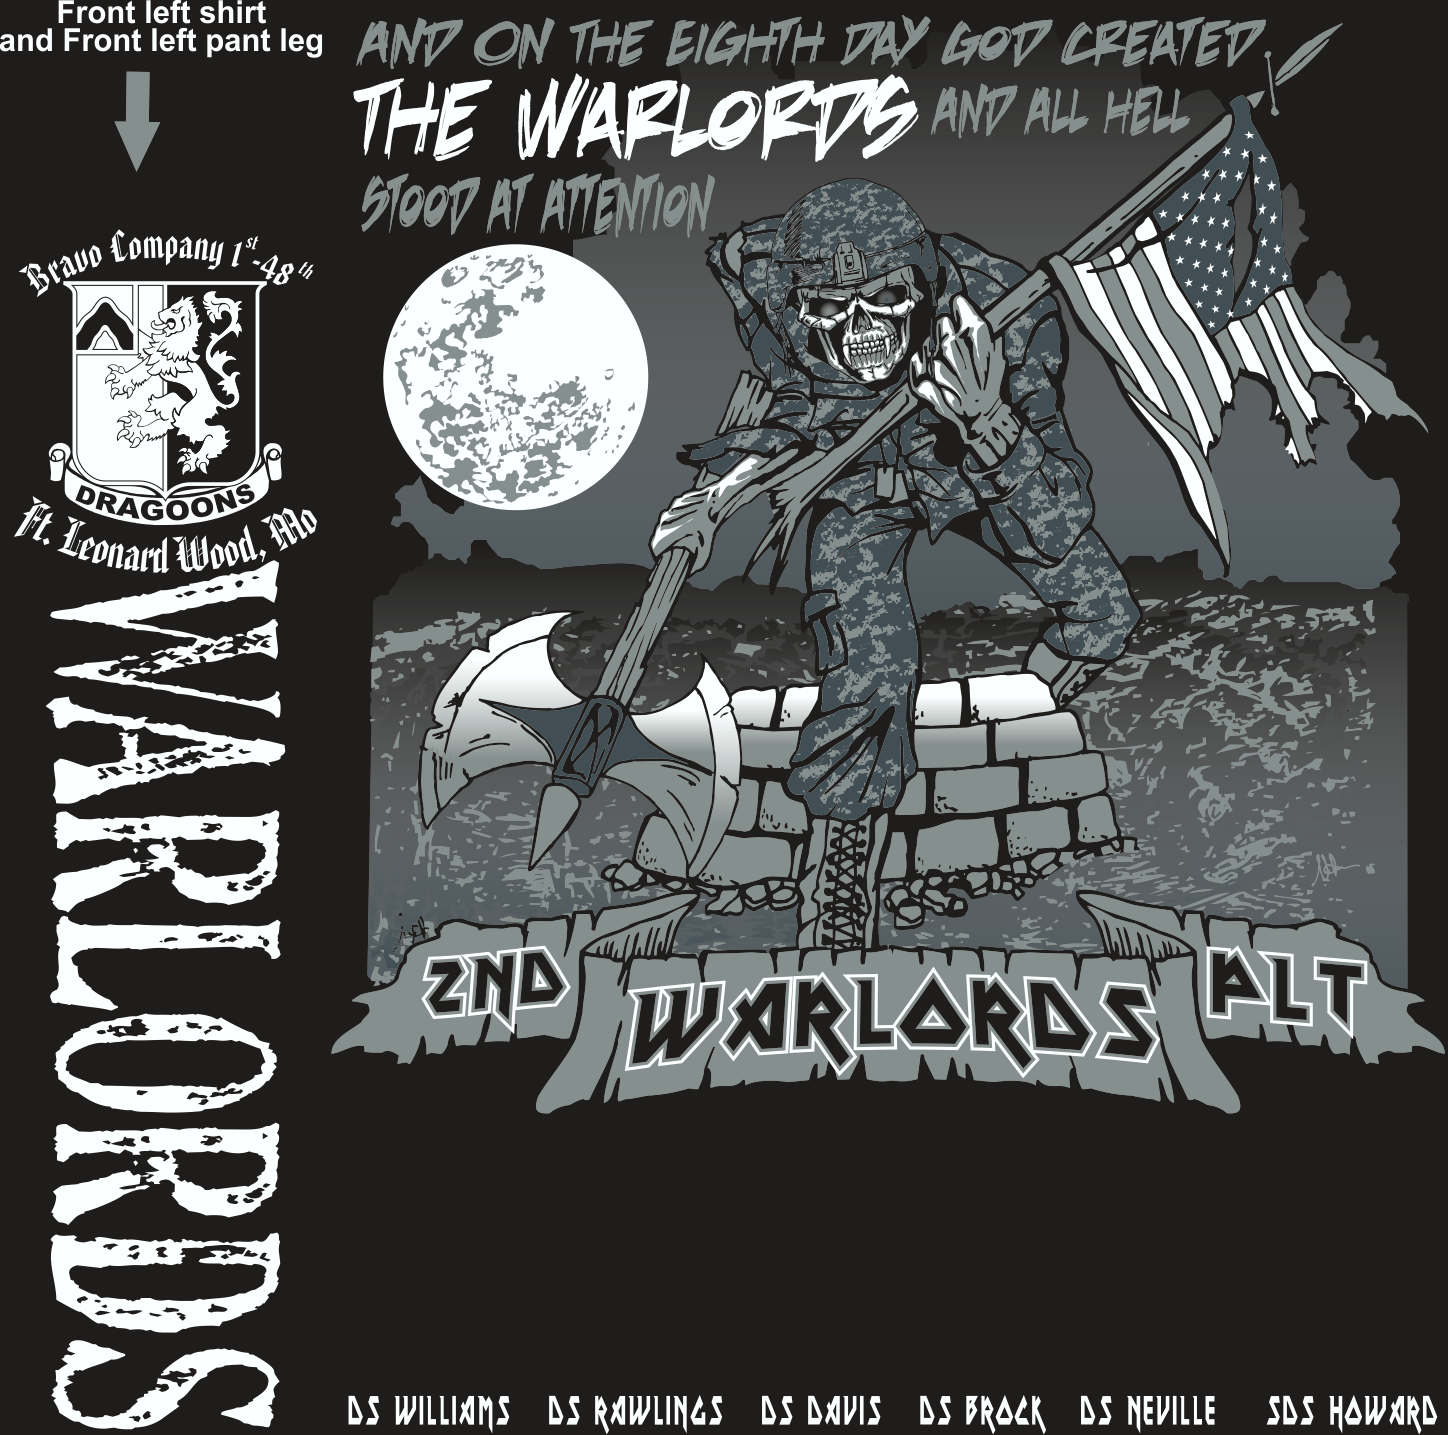 BRAVO 1-48 WARLORDS GRADUATING DAY 12-3-2015 digital